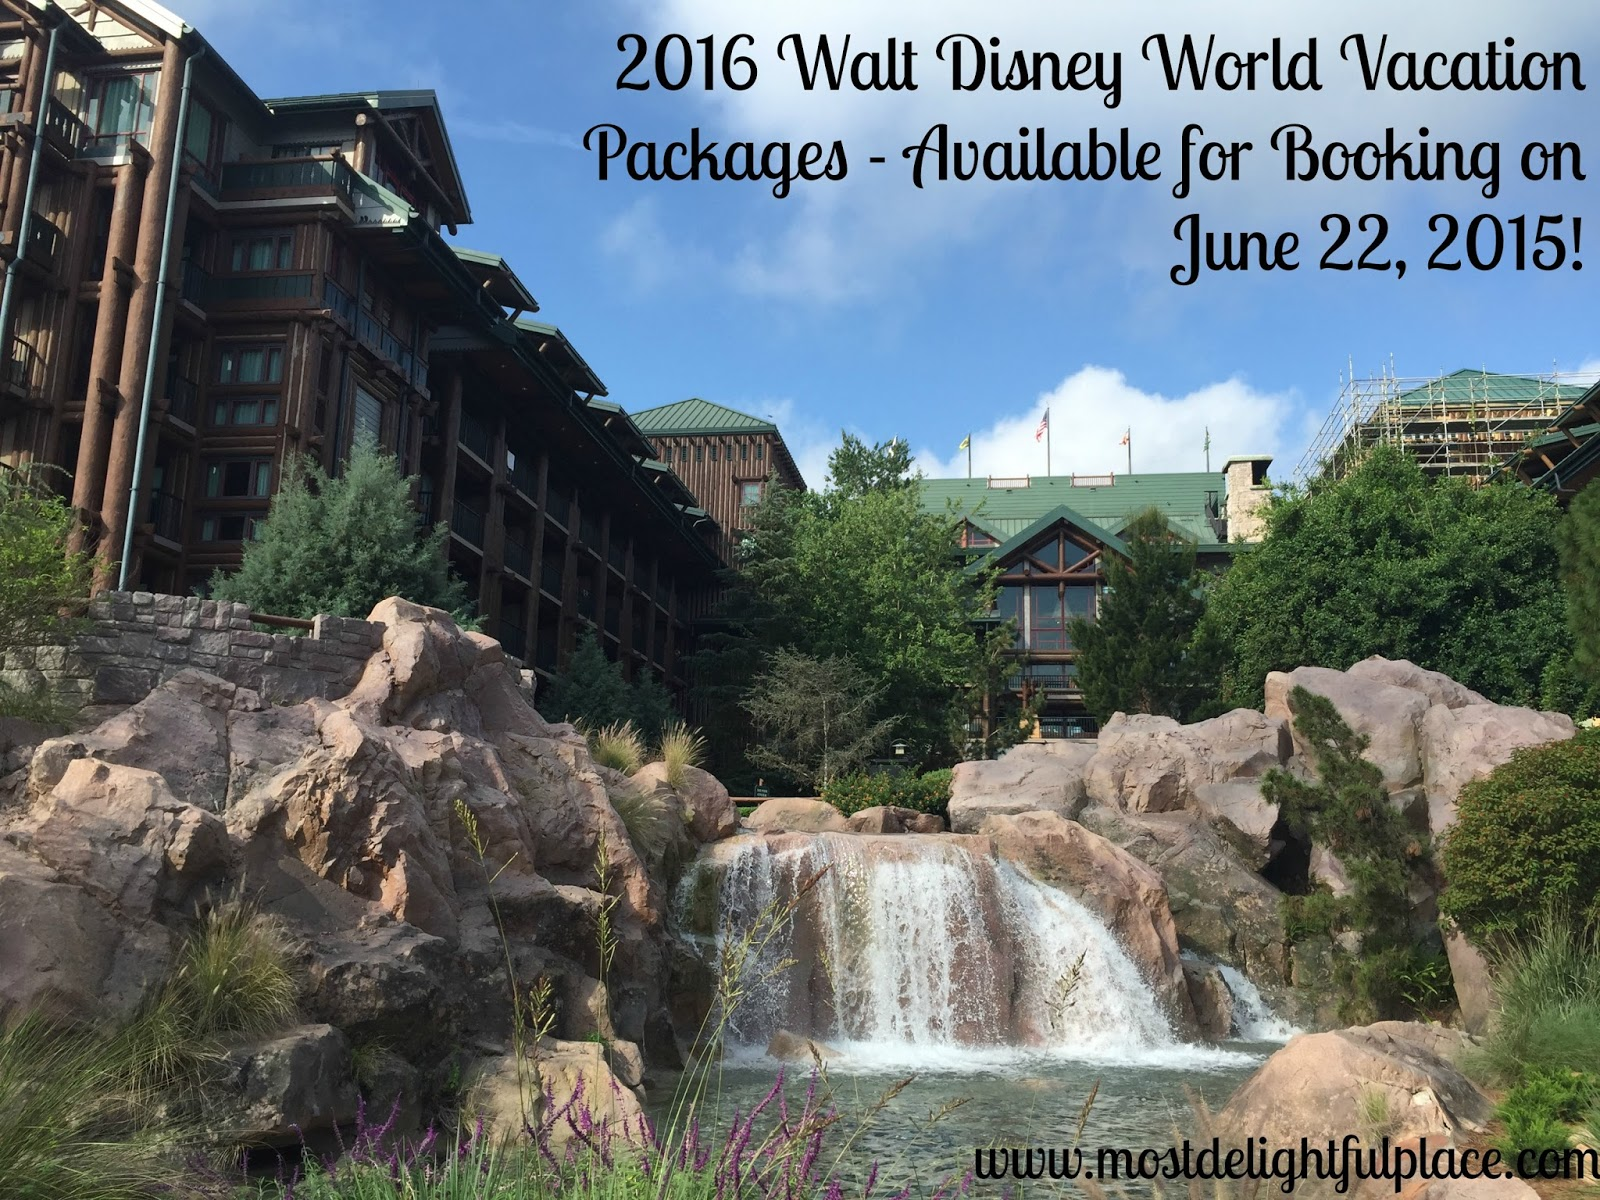 My Most Delightful Thoughts Walt Disney World Vacation - Disney vacation packages 2016